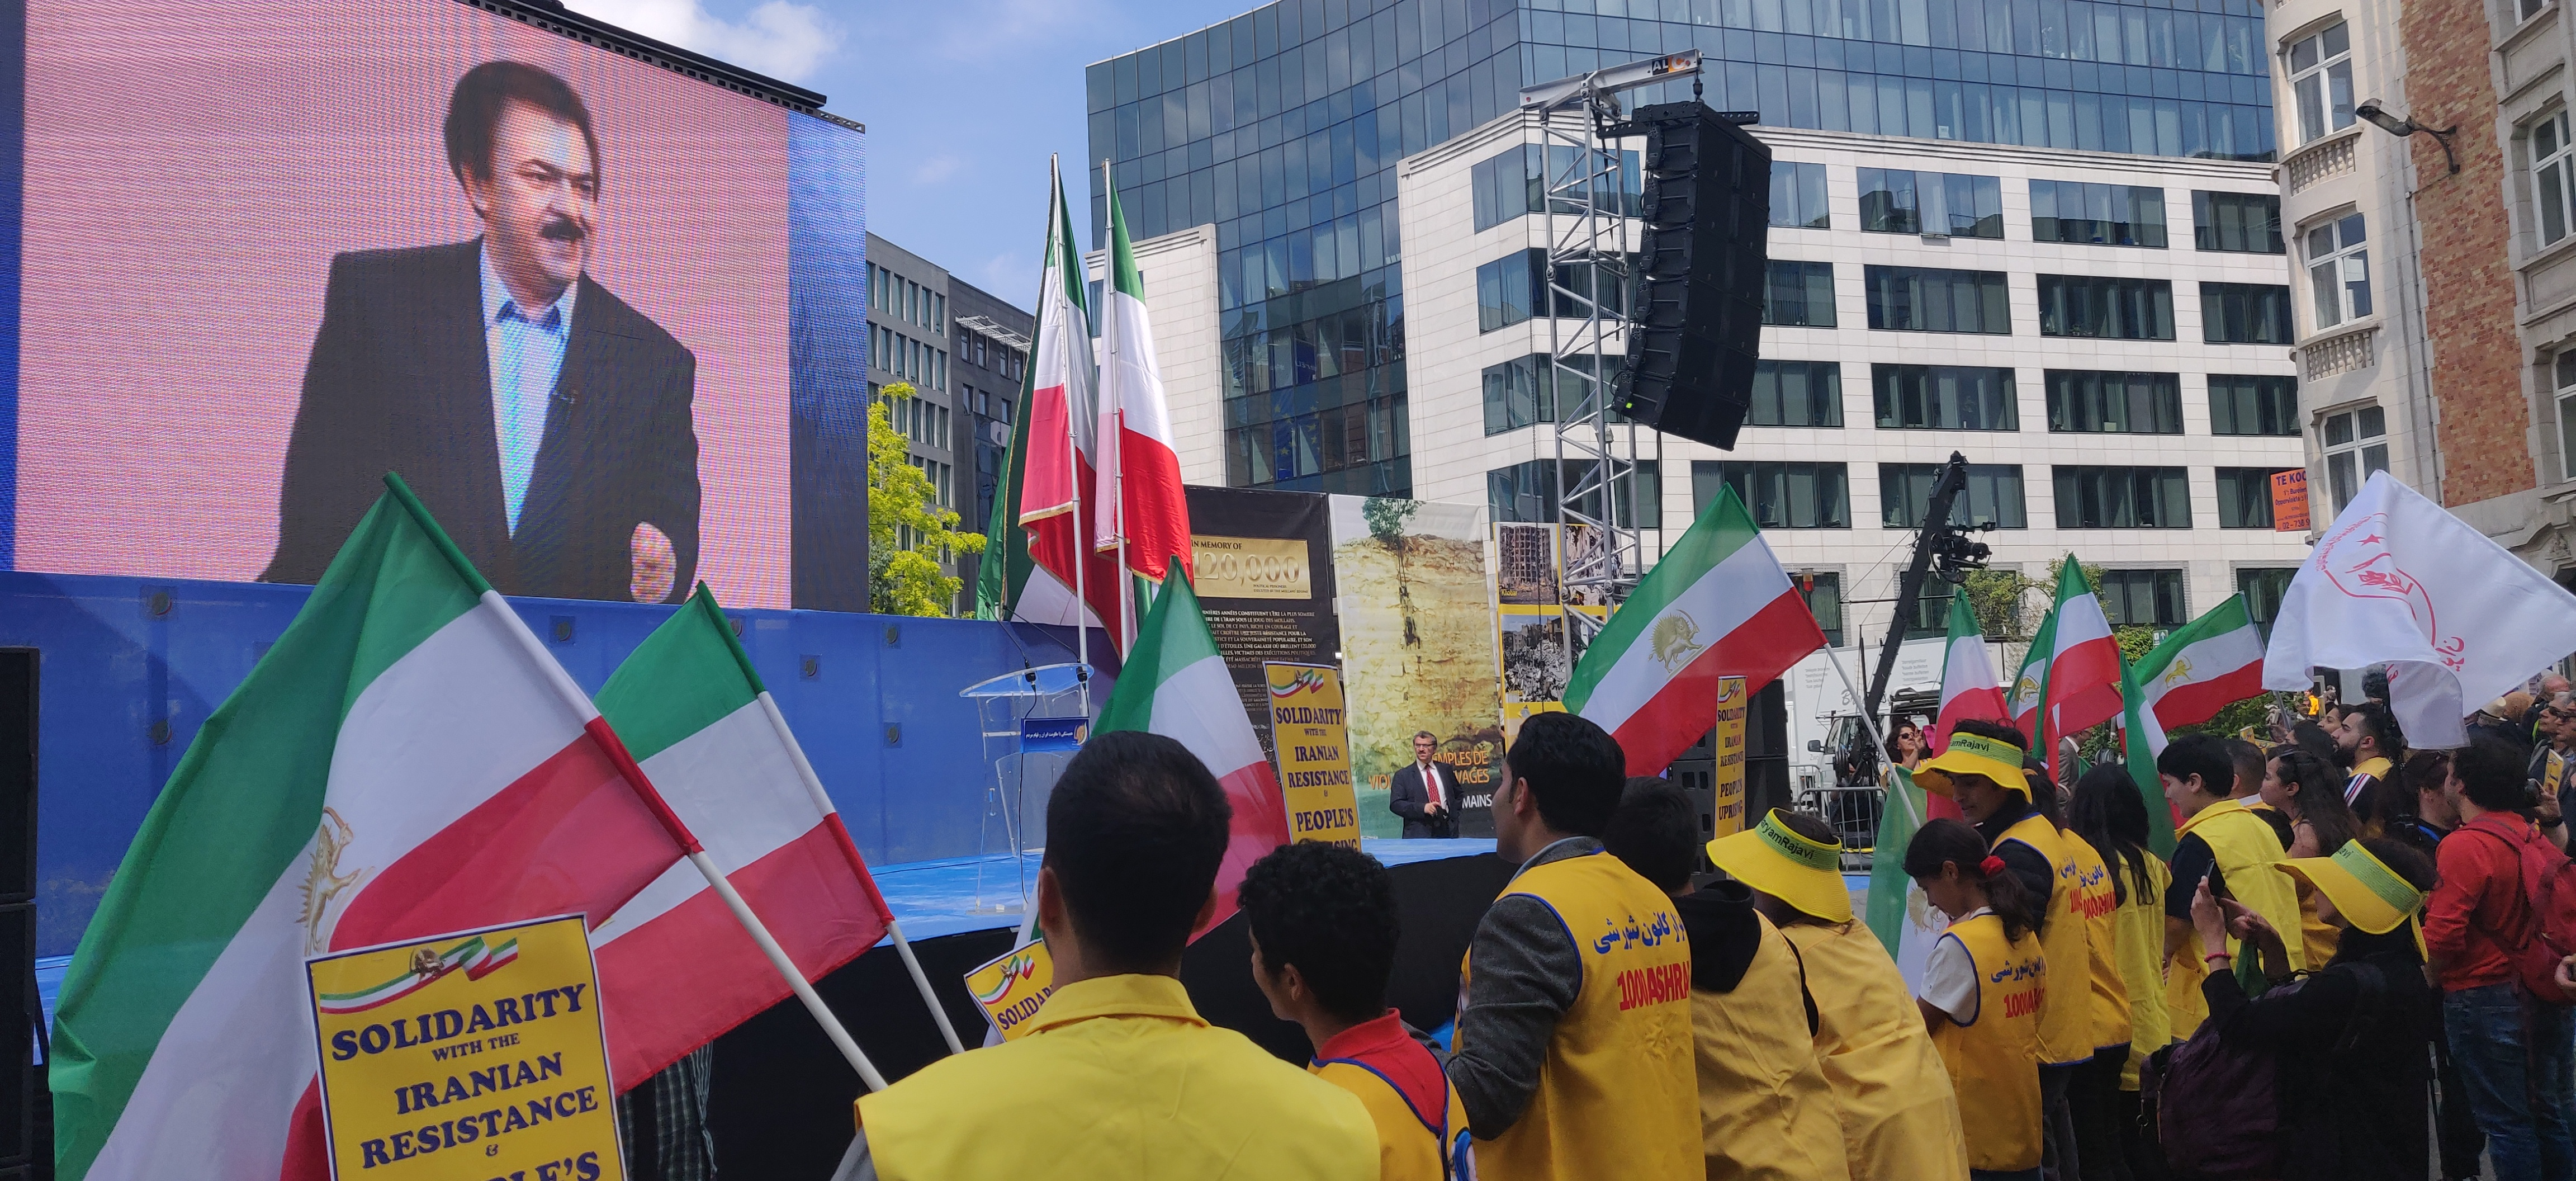 Demonstration mot iranska regimen, Bryssel, 15 juni 2019